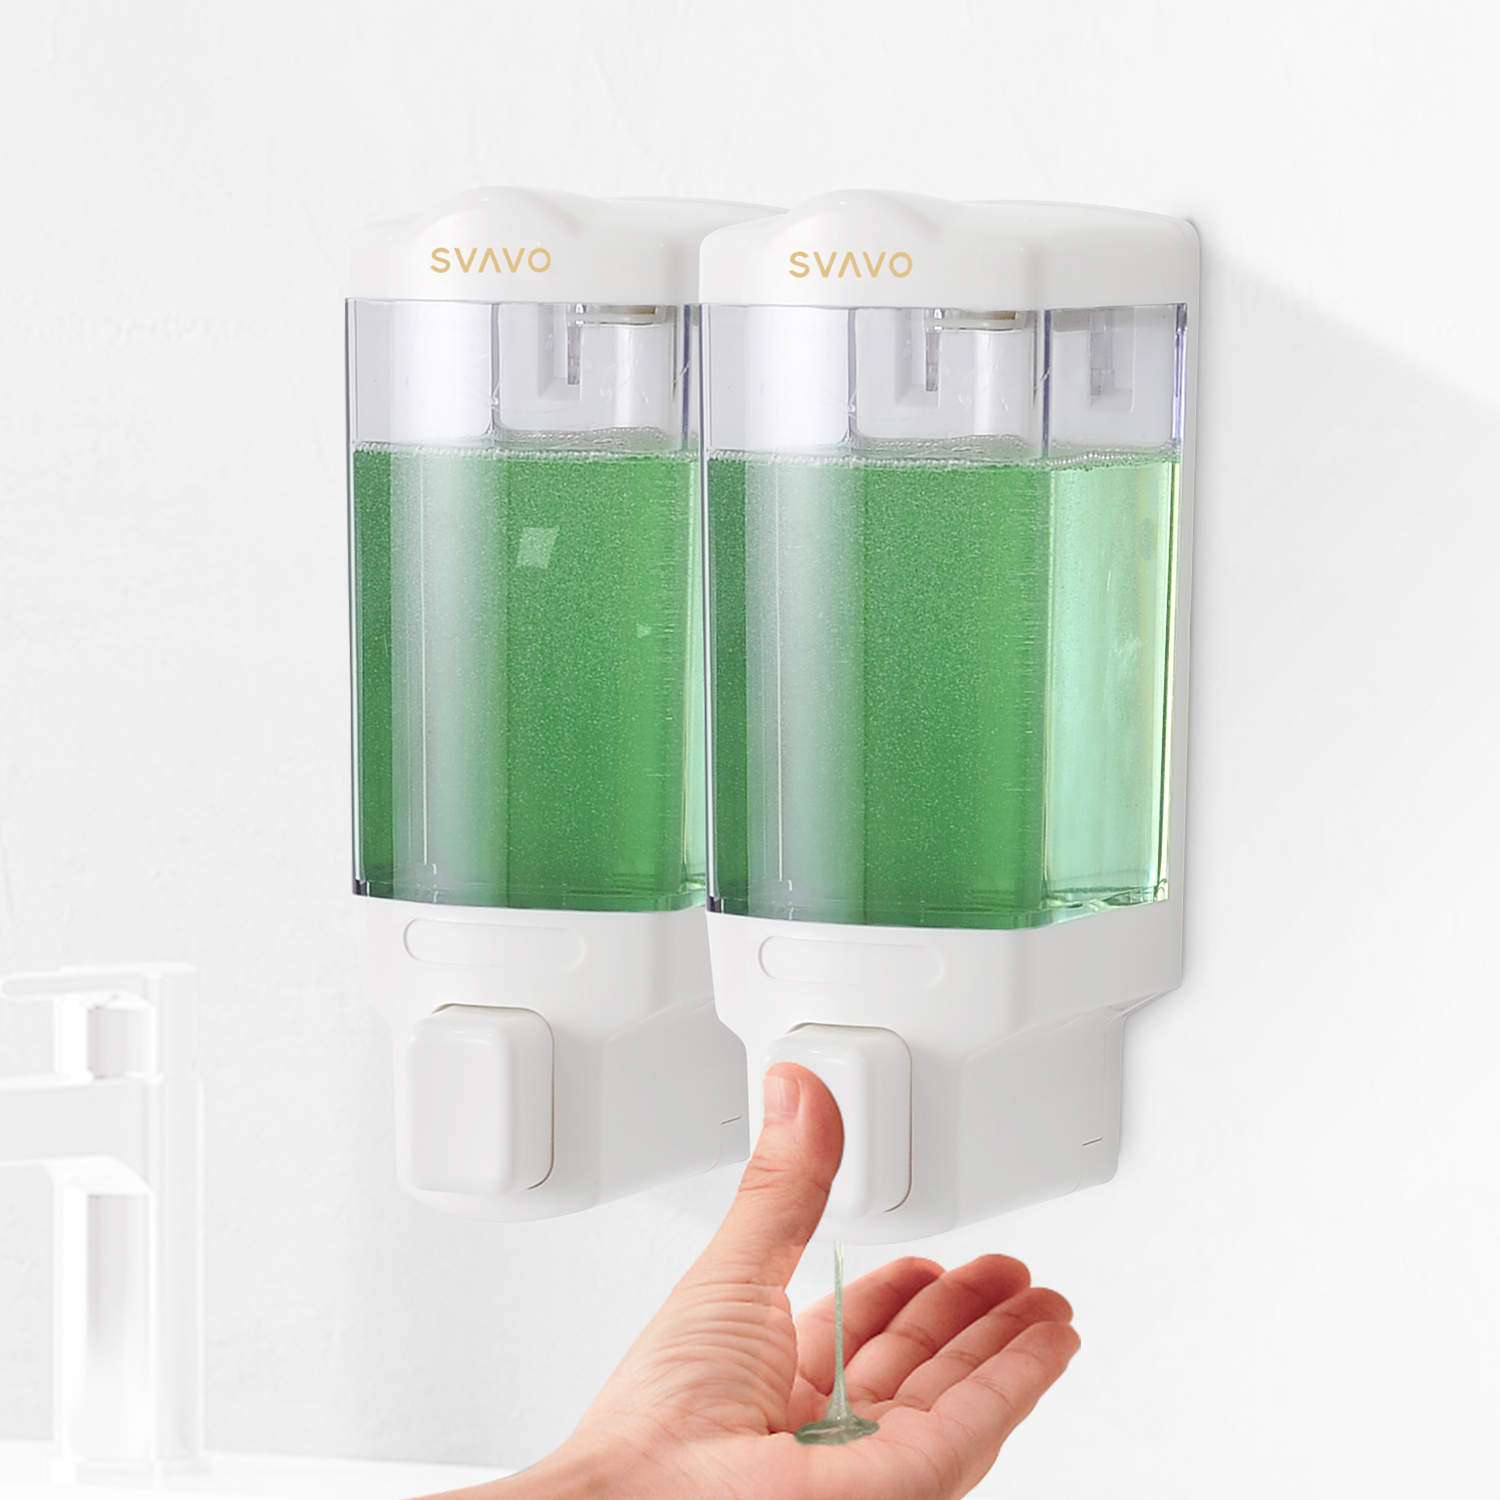 Double Shampoo and Soap Dispensers for Showers V-8122